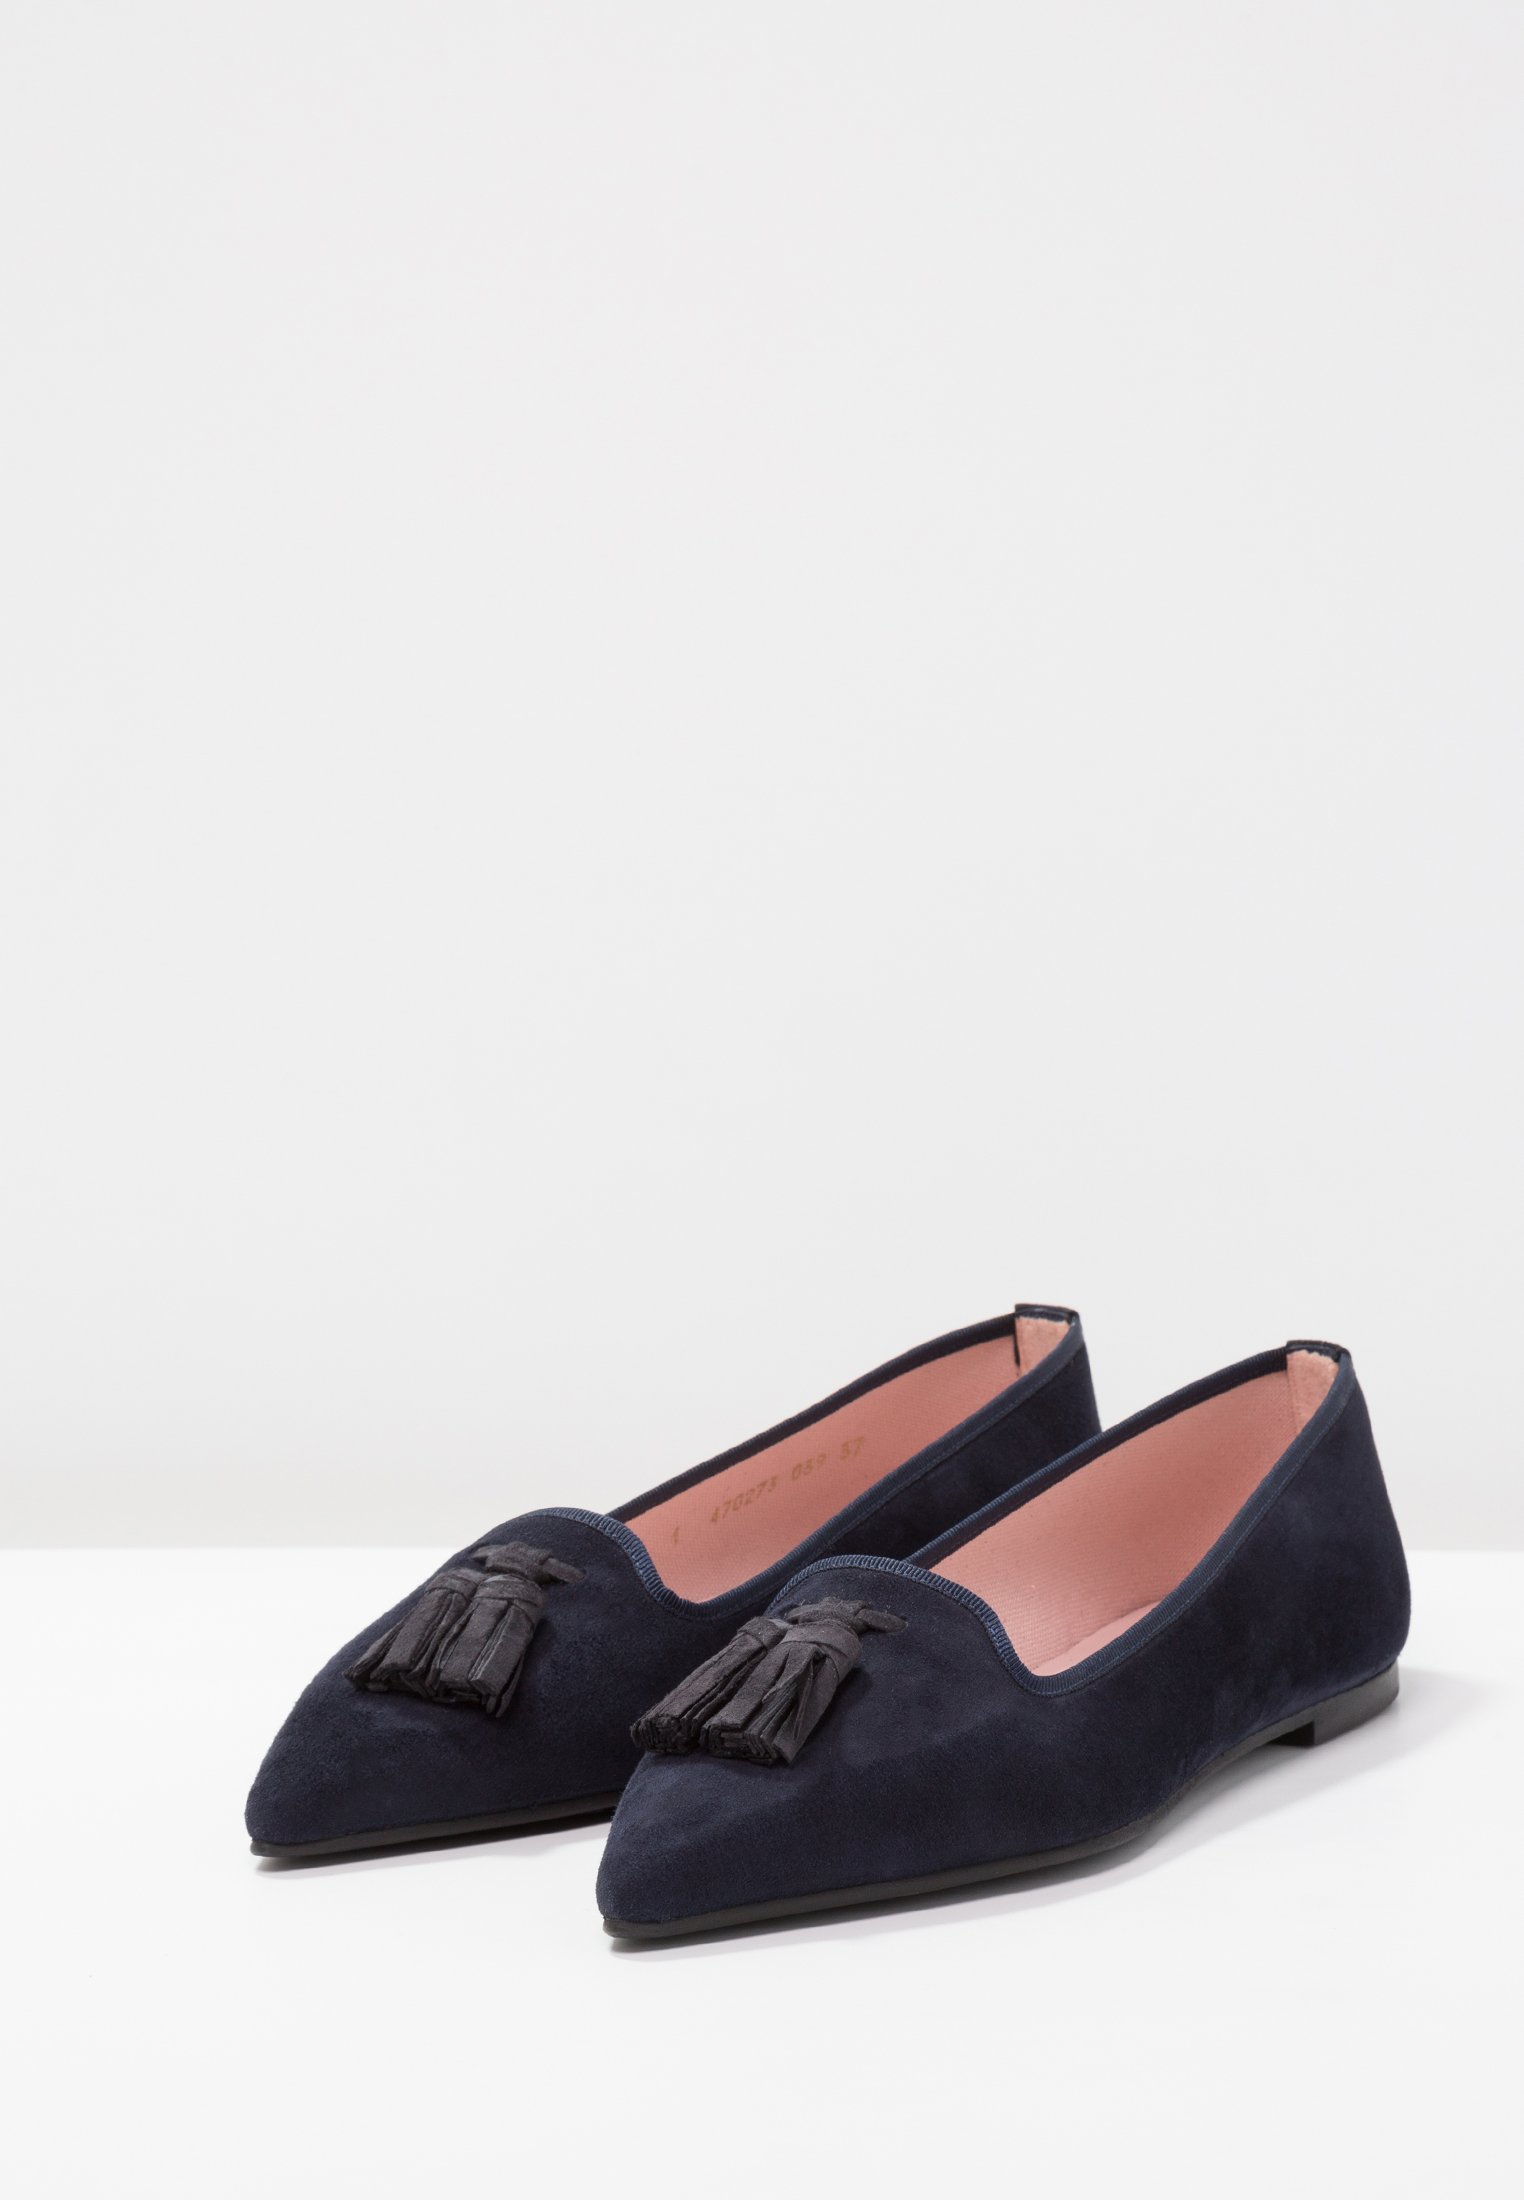 Pretty Ballerinas ANGELIS - Półbuty wsuwane - navy blue/balder/black